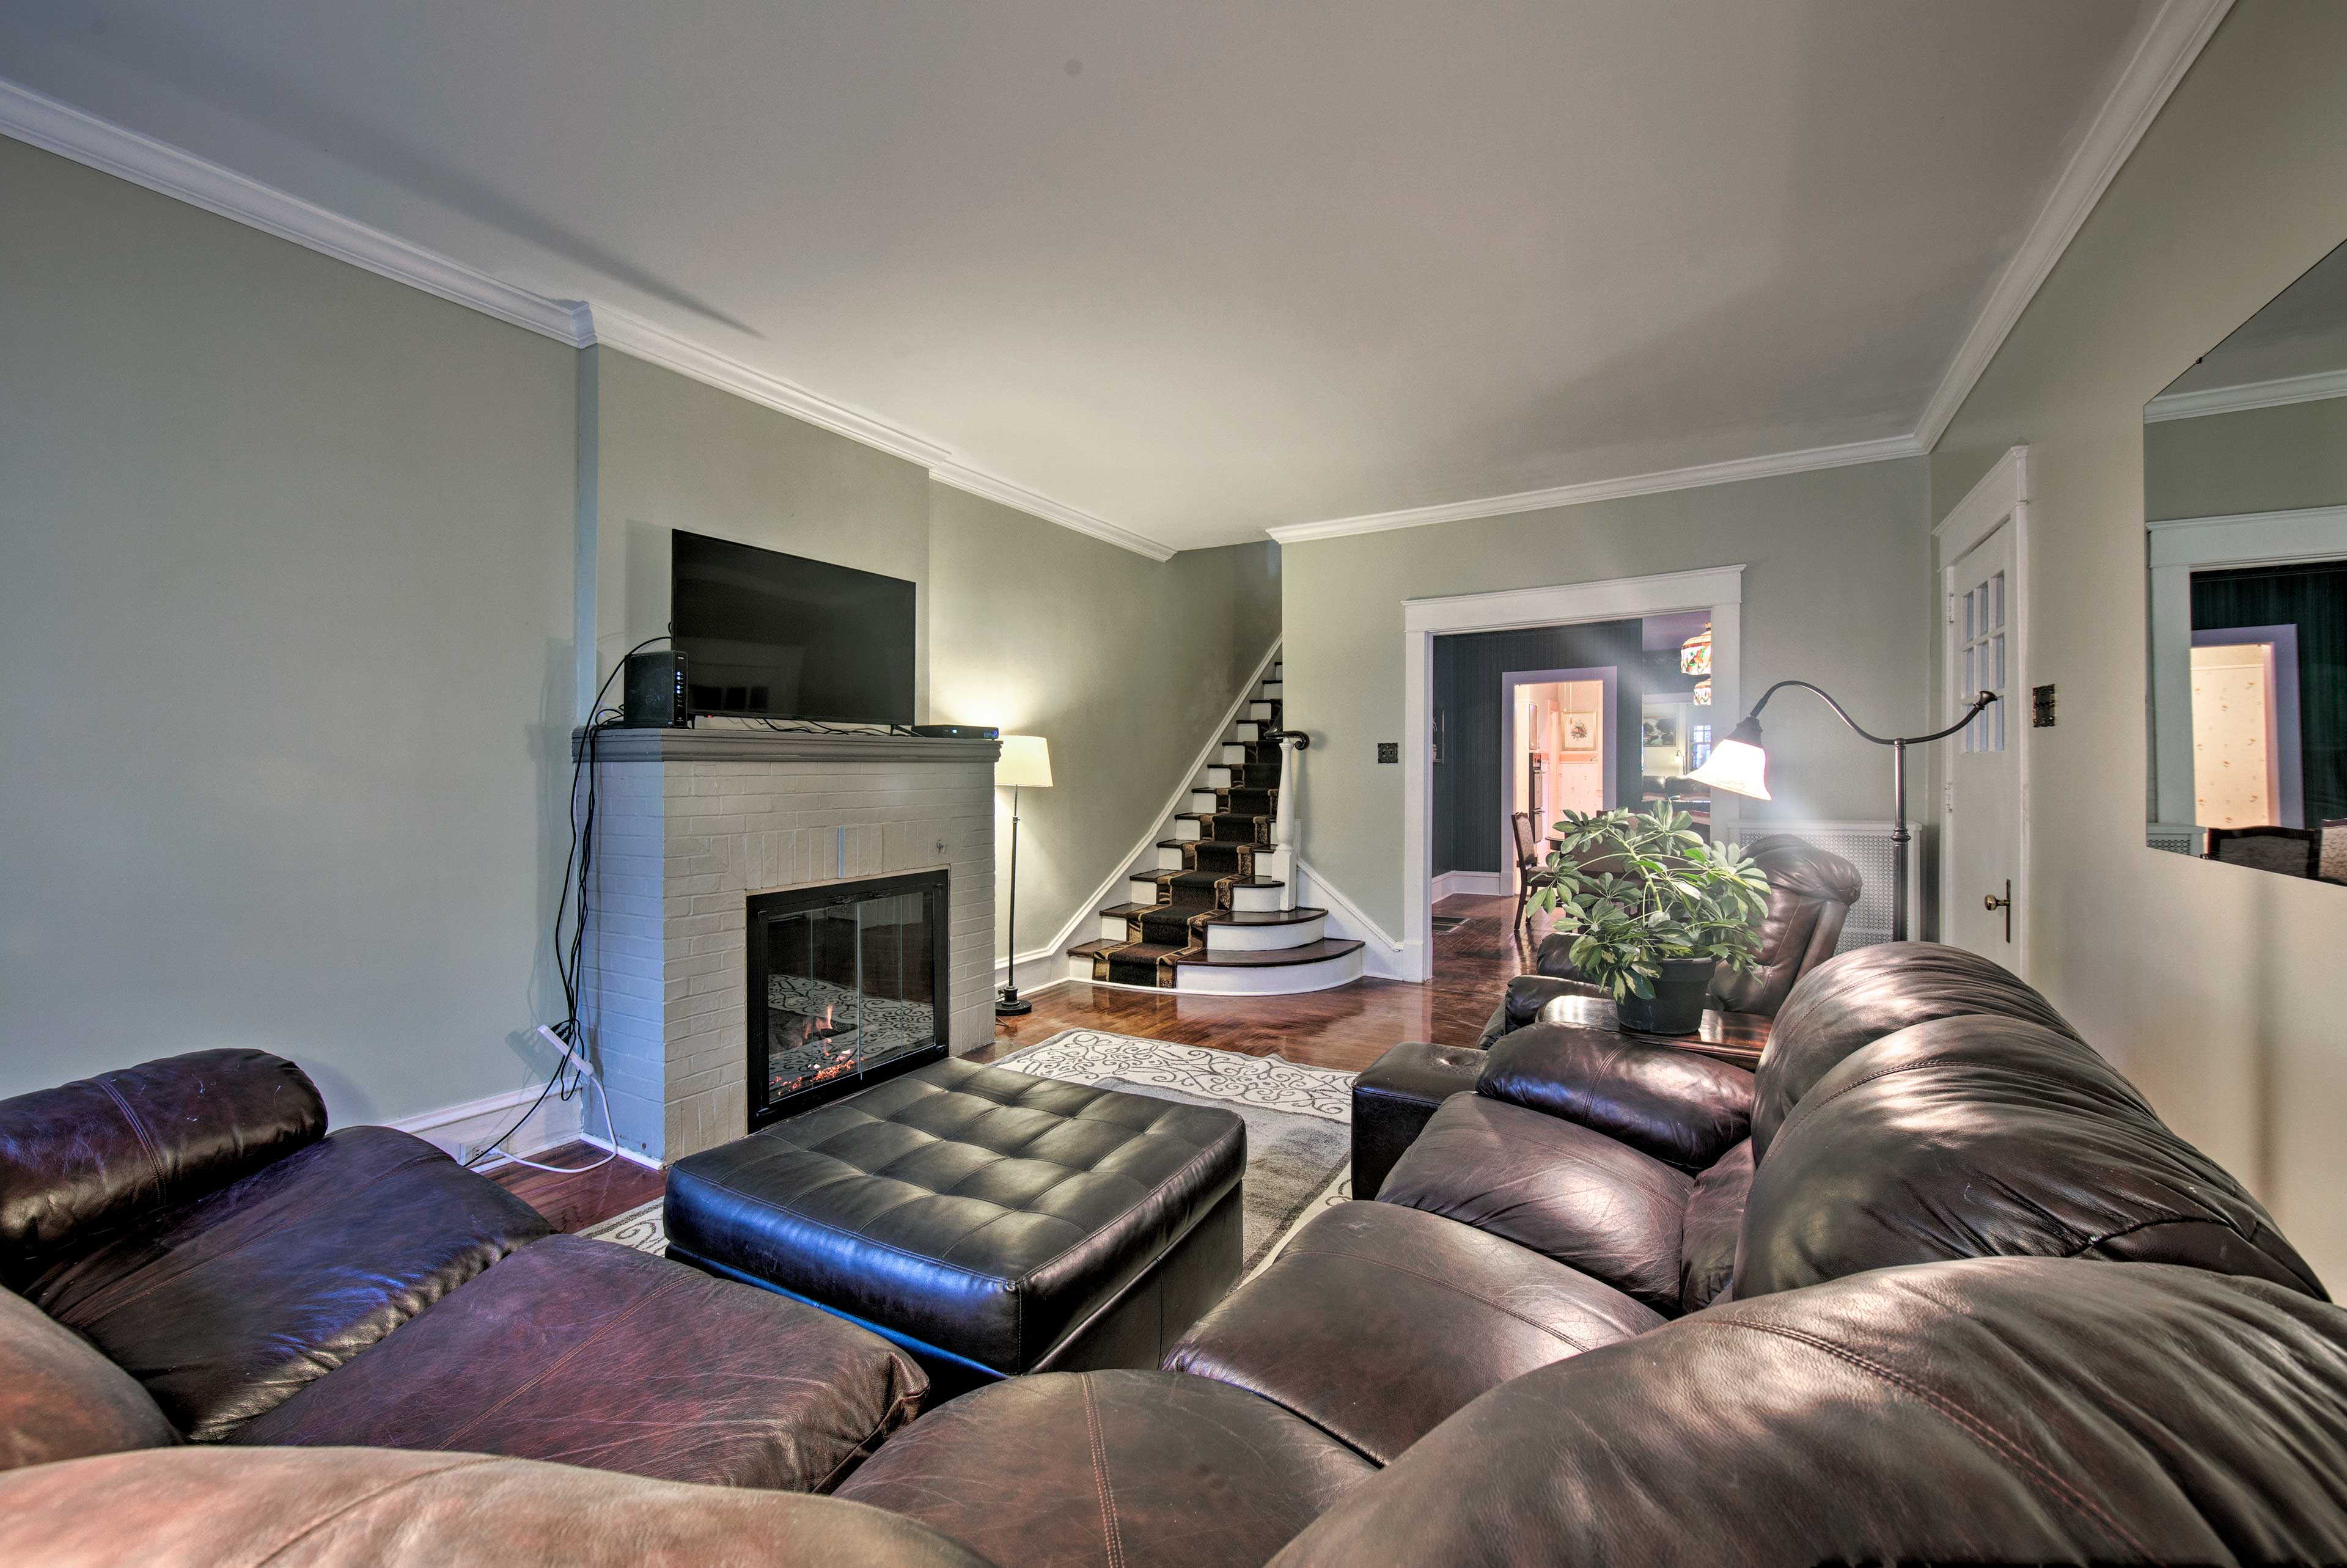 Watch a show on the flat-screen TV while warming up by the fireplace.